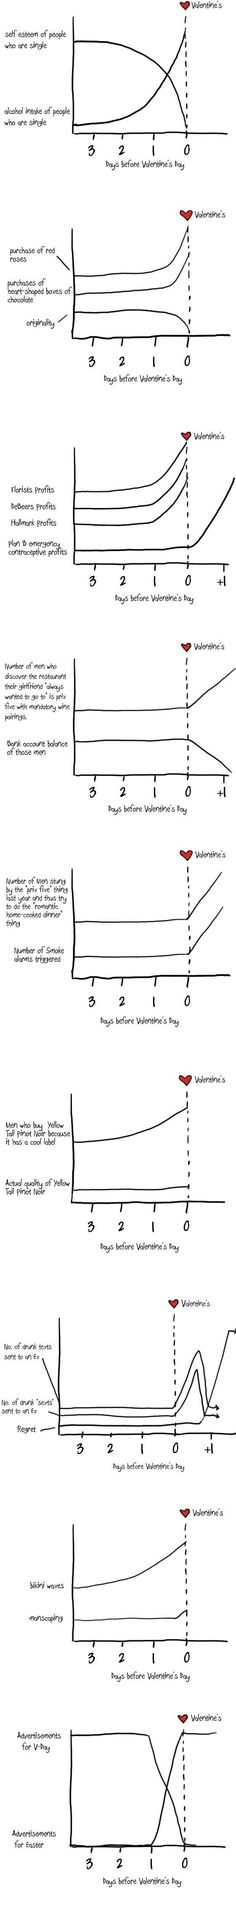 valentines day charts holiday, funni stuff, laugh, valentine day, giggl, true, infograph, number, thing